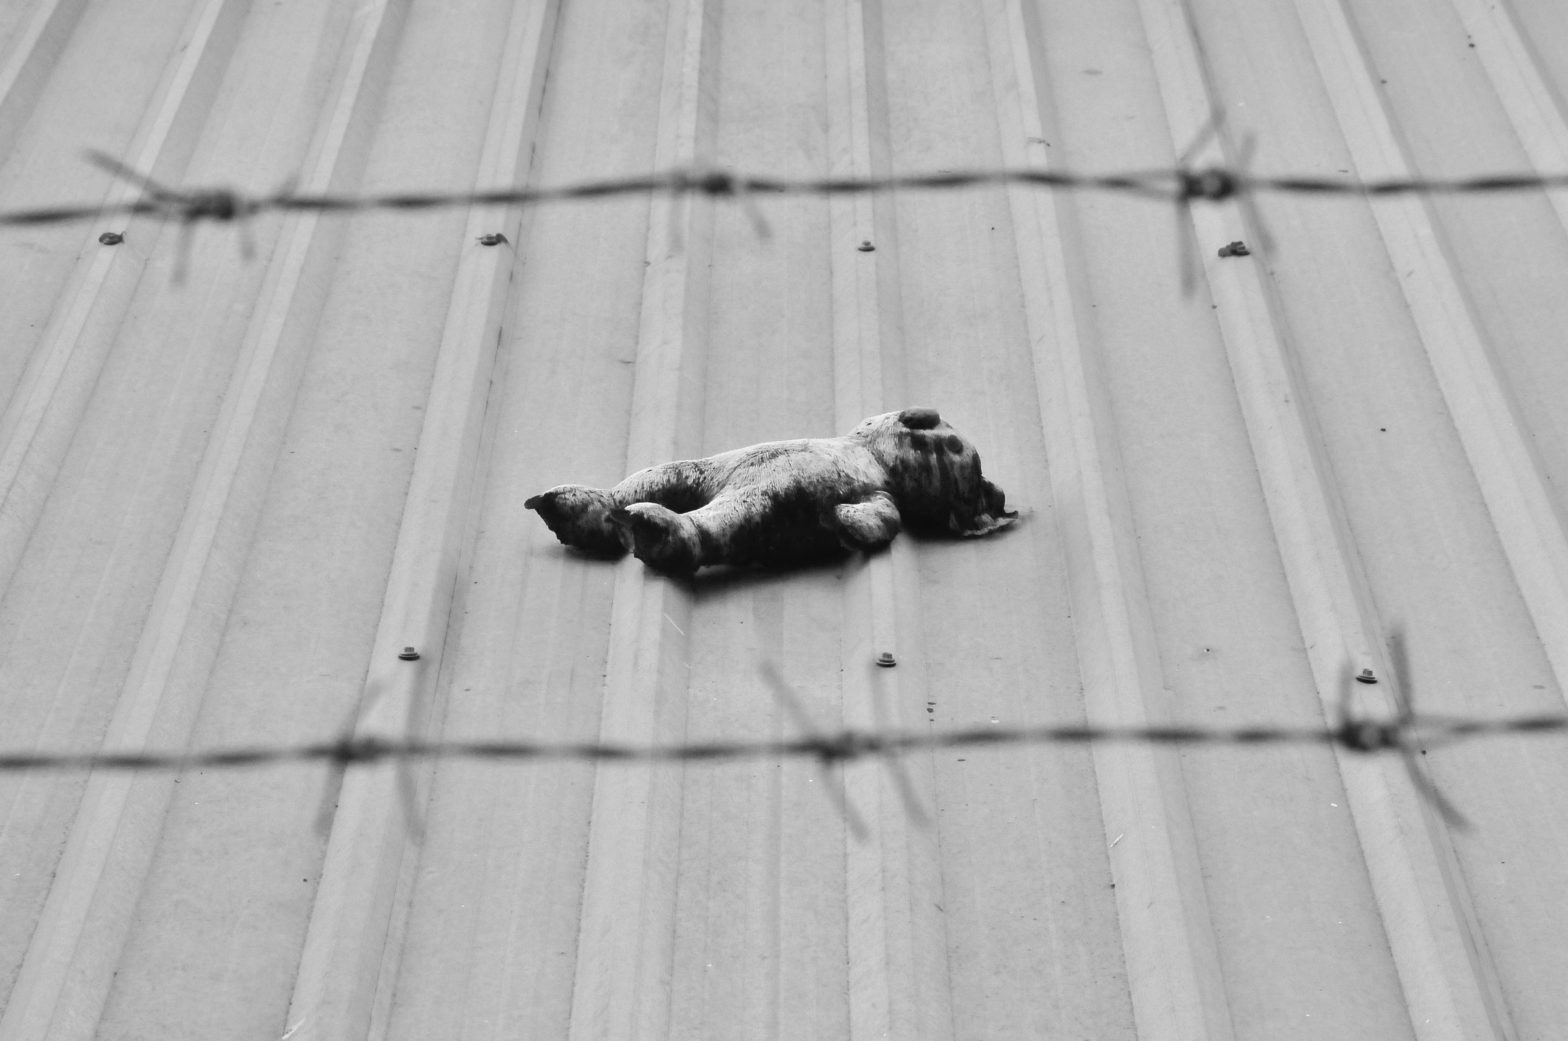 A stuffed animal lies on a corrugated roof; in the foreground is barbed wire.